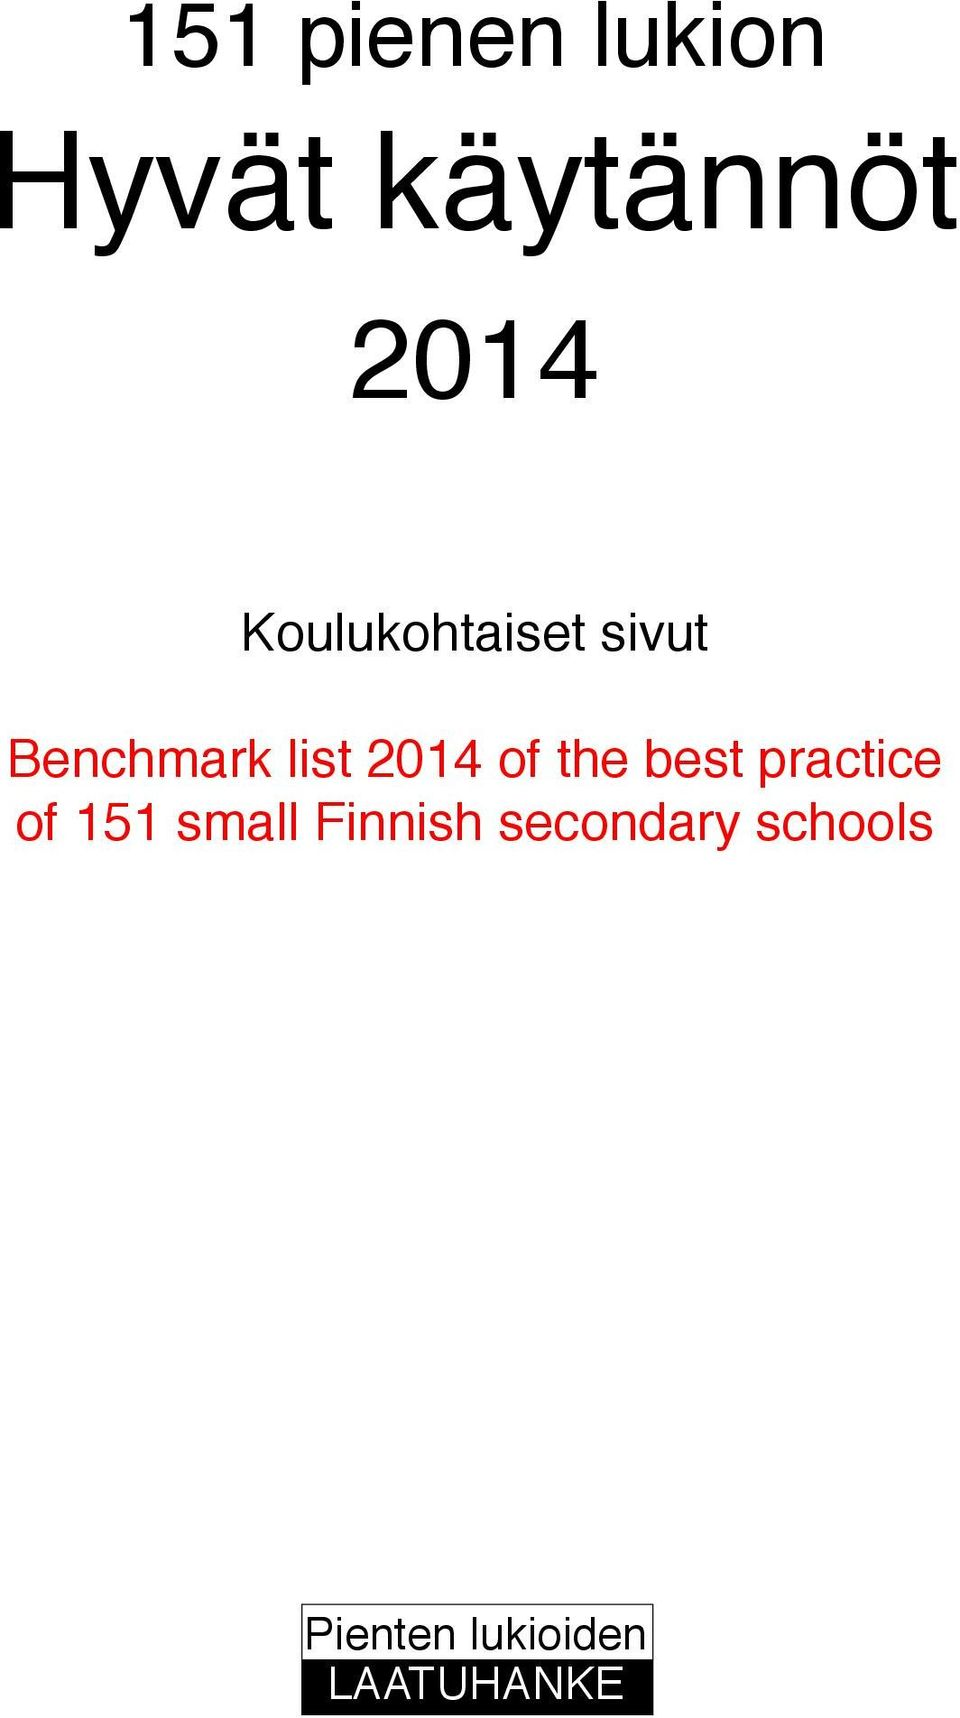 of the best practice of 151 small Finnish